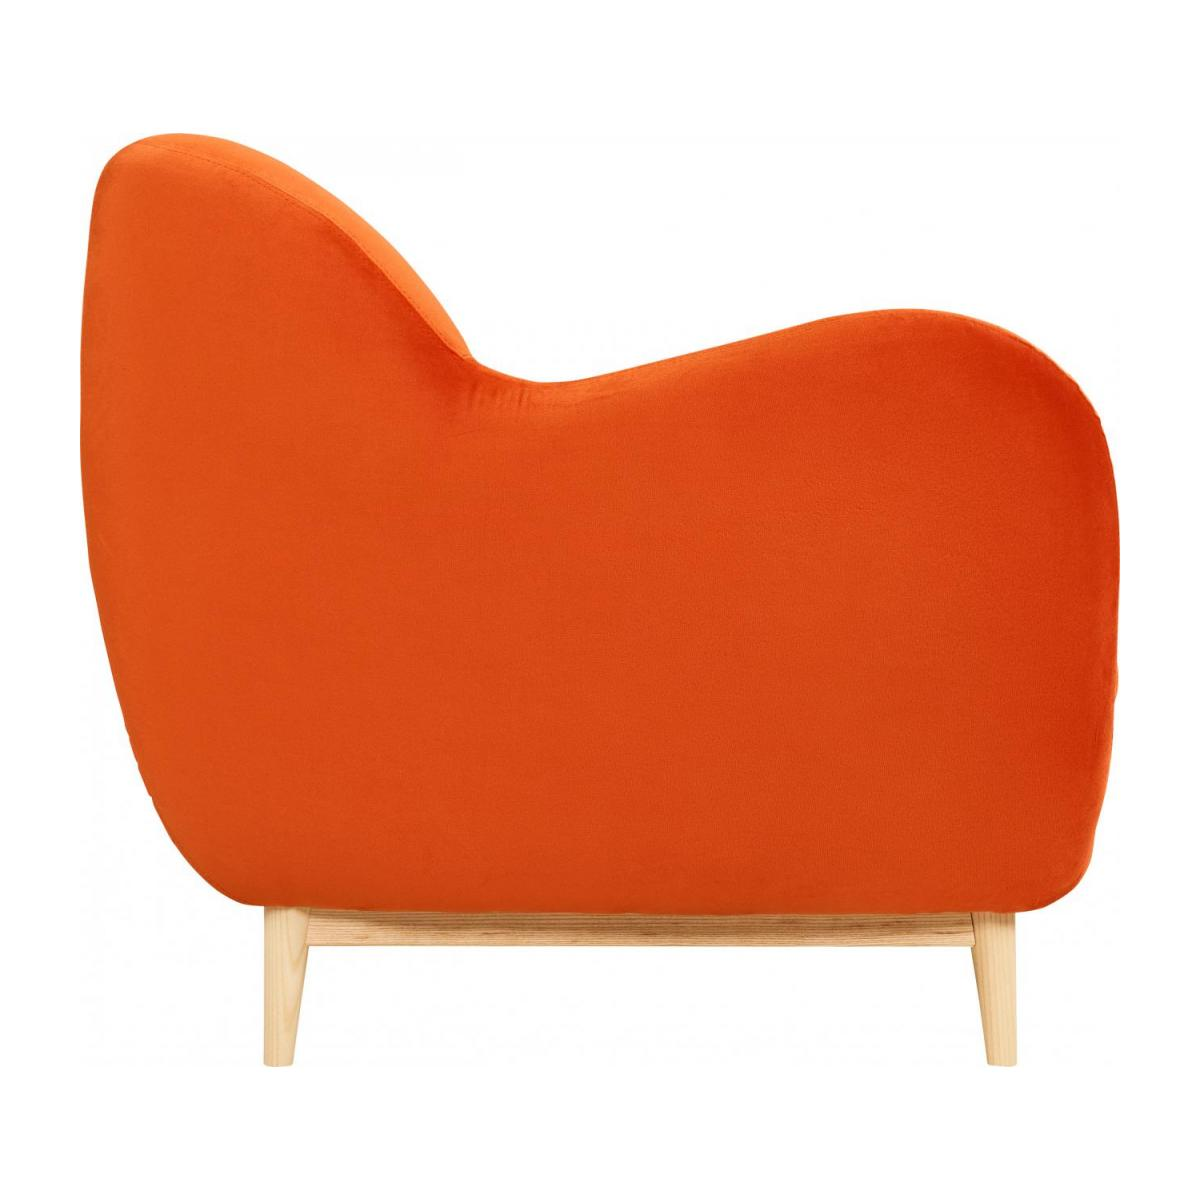 3-Sitzer-Sofa aus Samt - Orange - Design by Adrien Carvès n°5